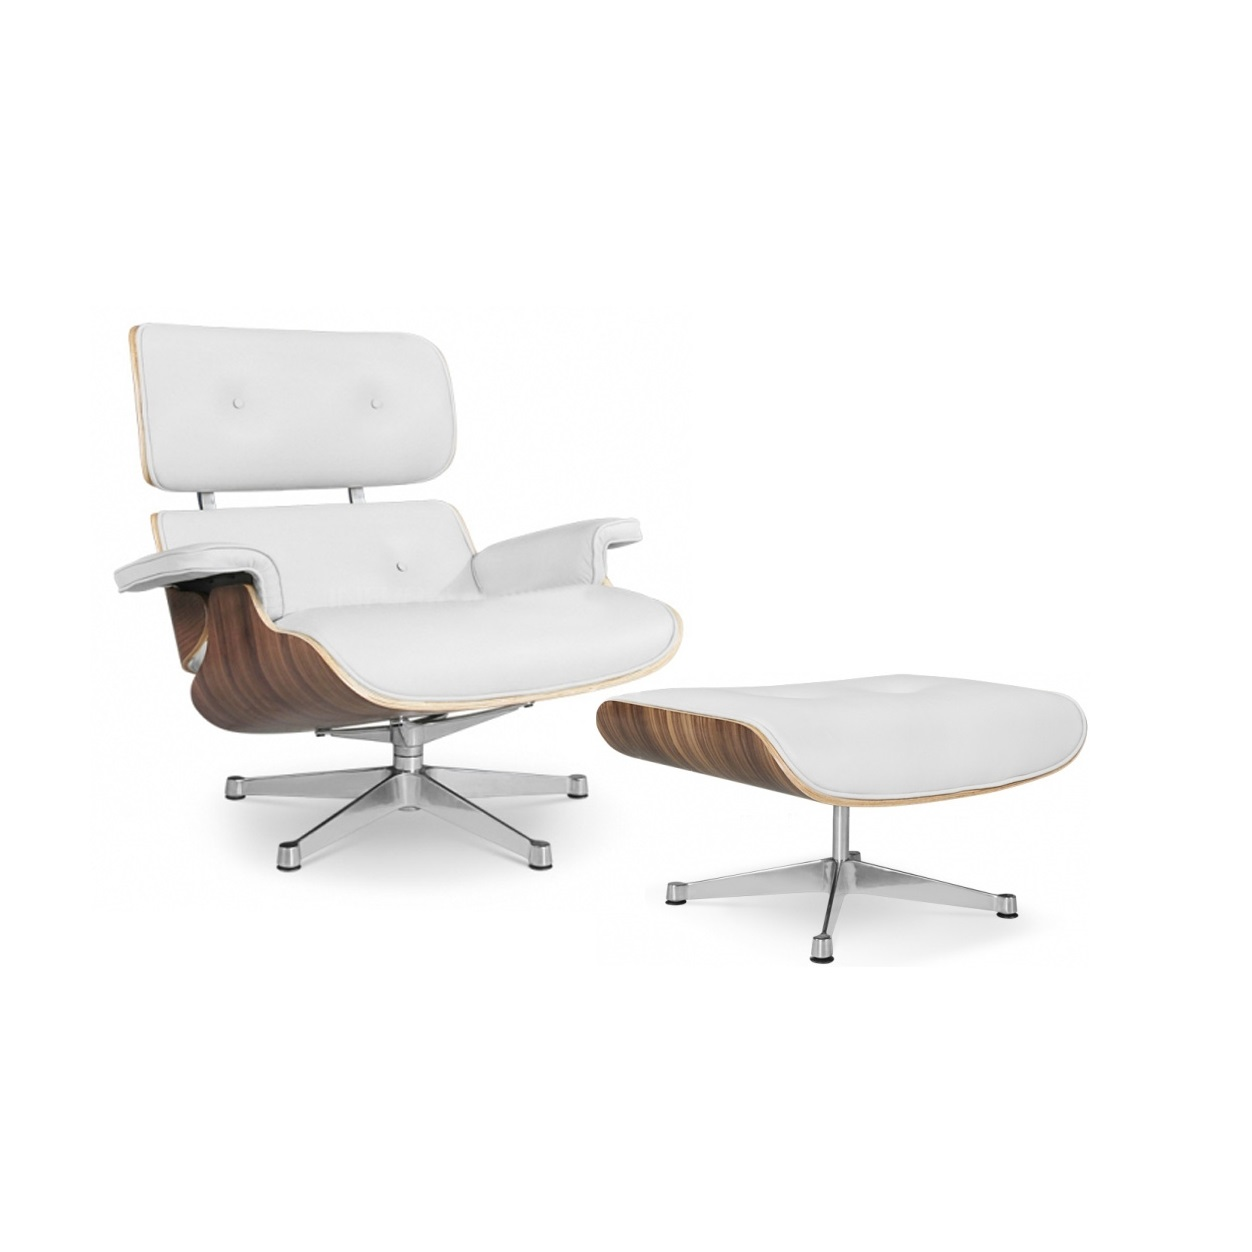 Eames Replica Replica Eames Lounge Chair With Ottoman White Italian Leather